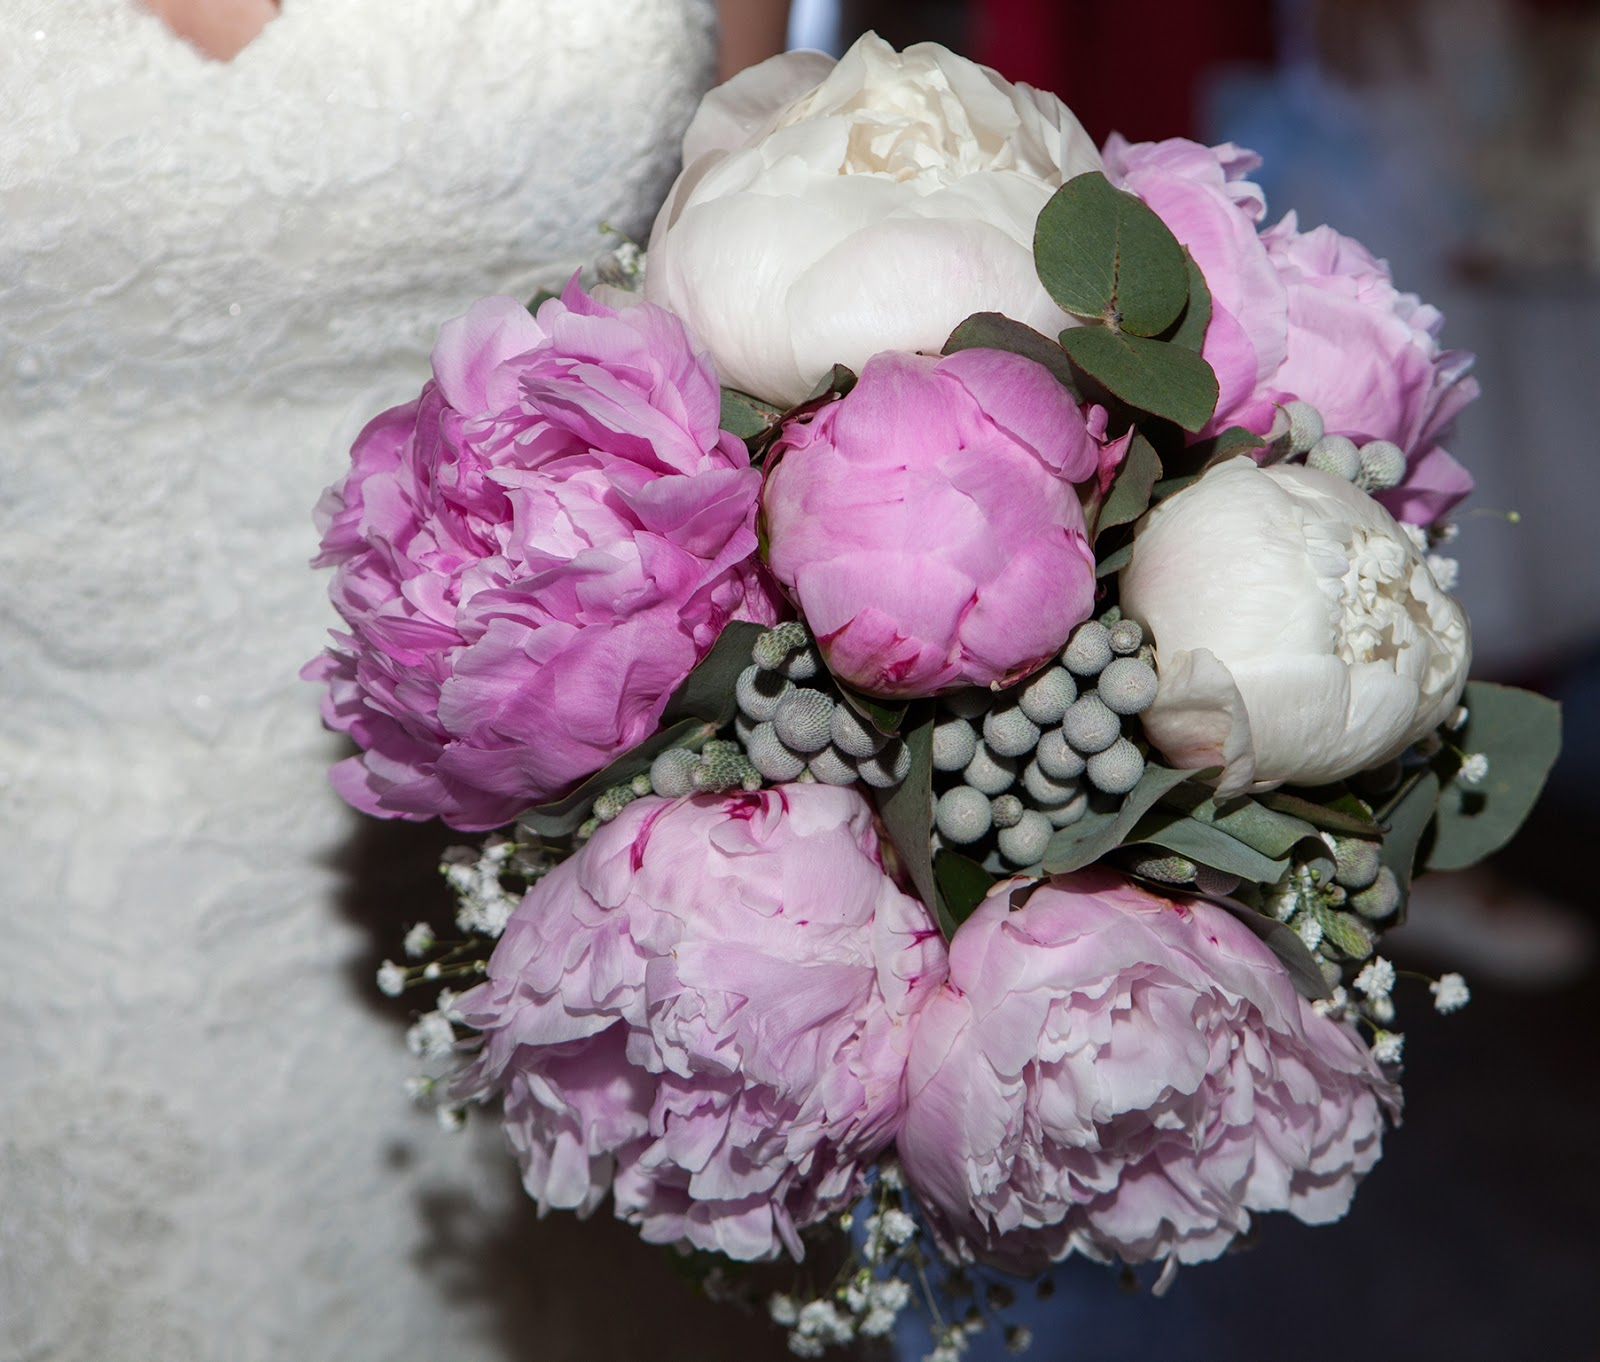 pronovias wedding dress peonies bouquet